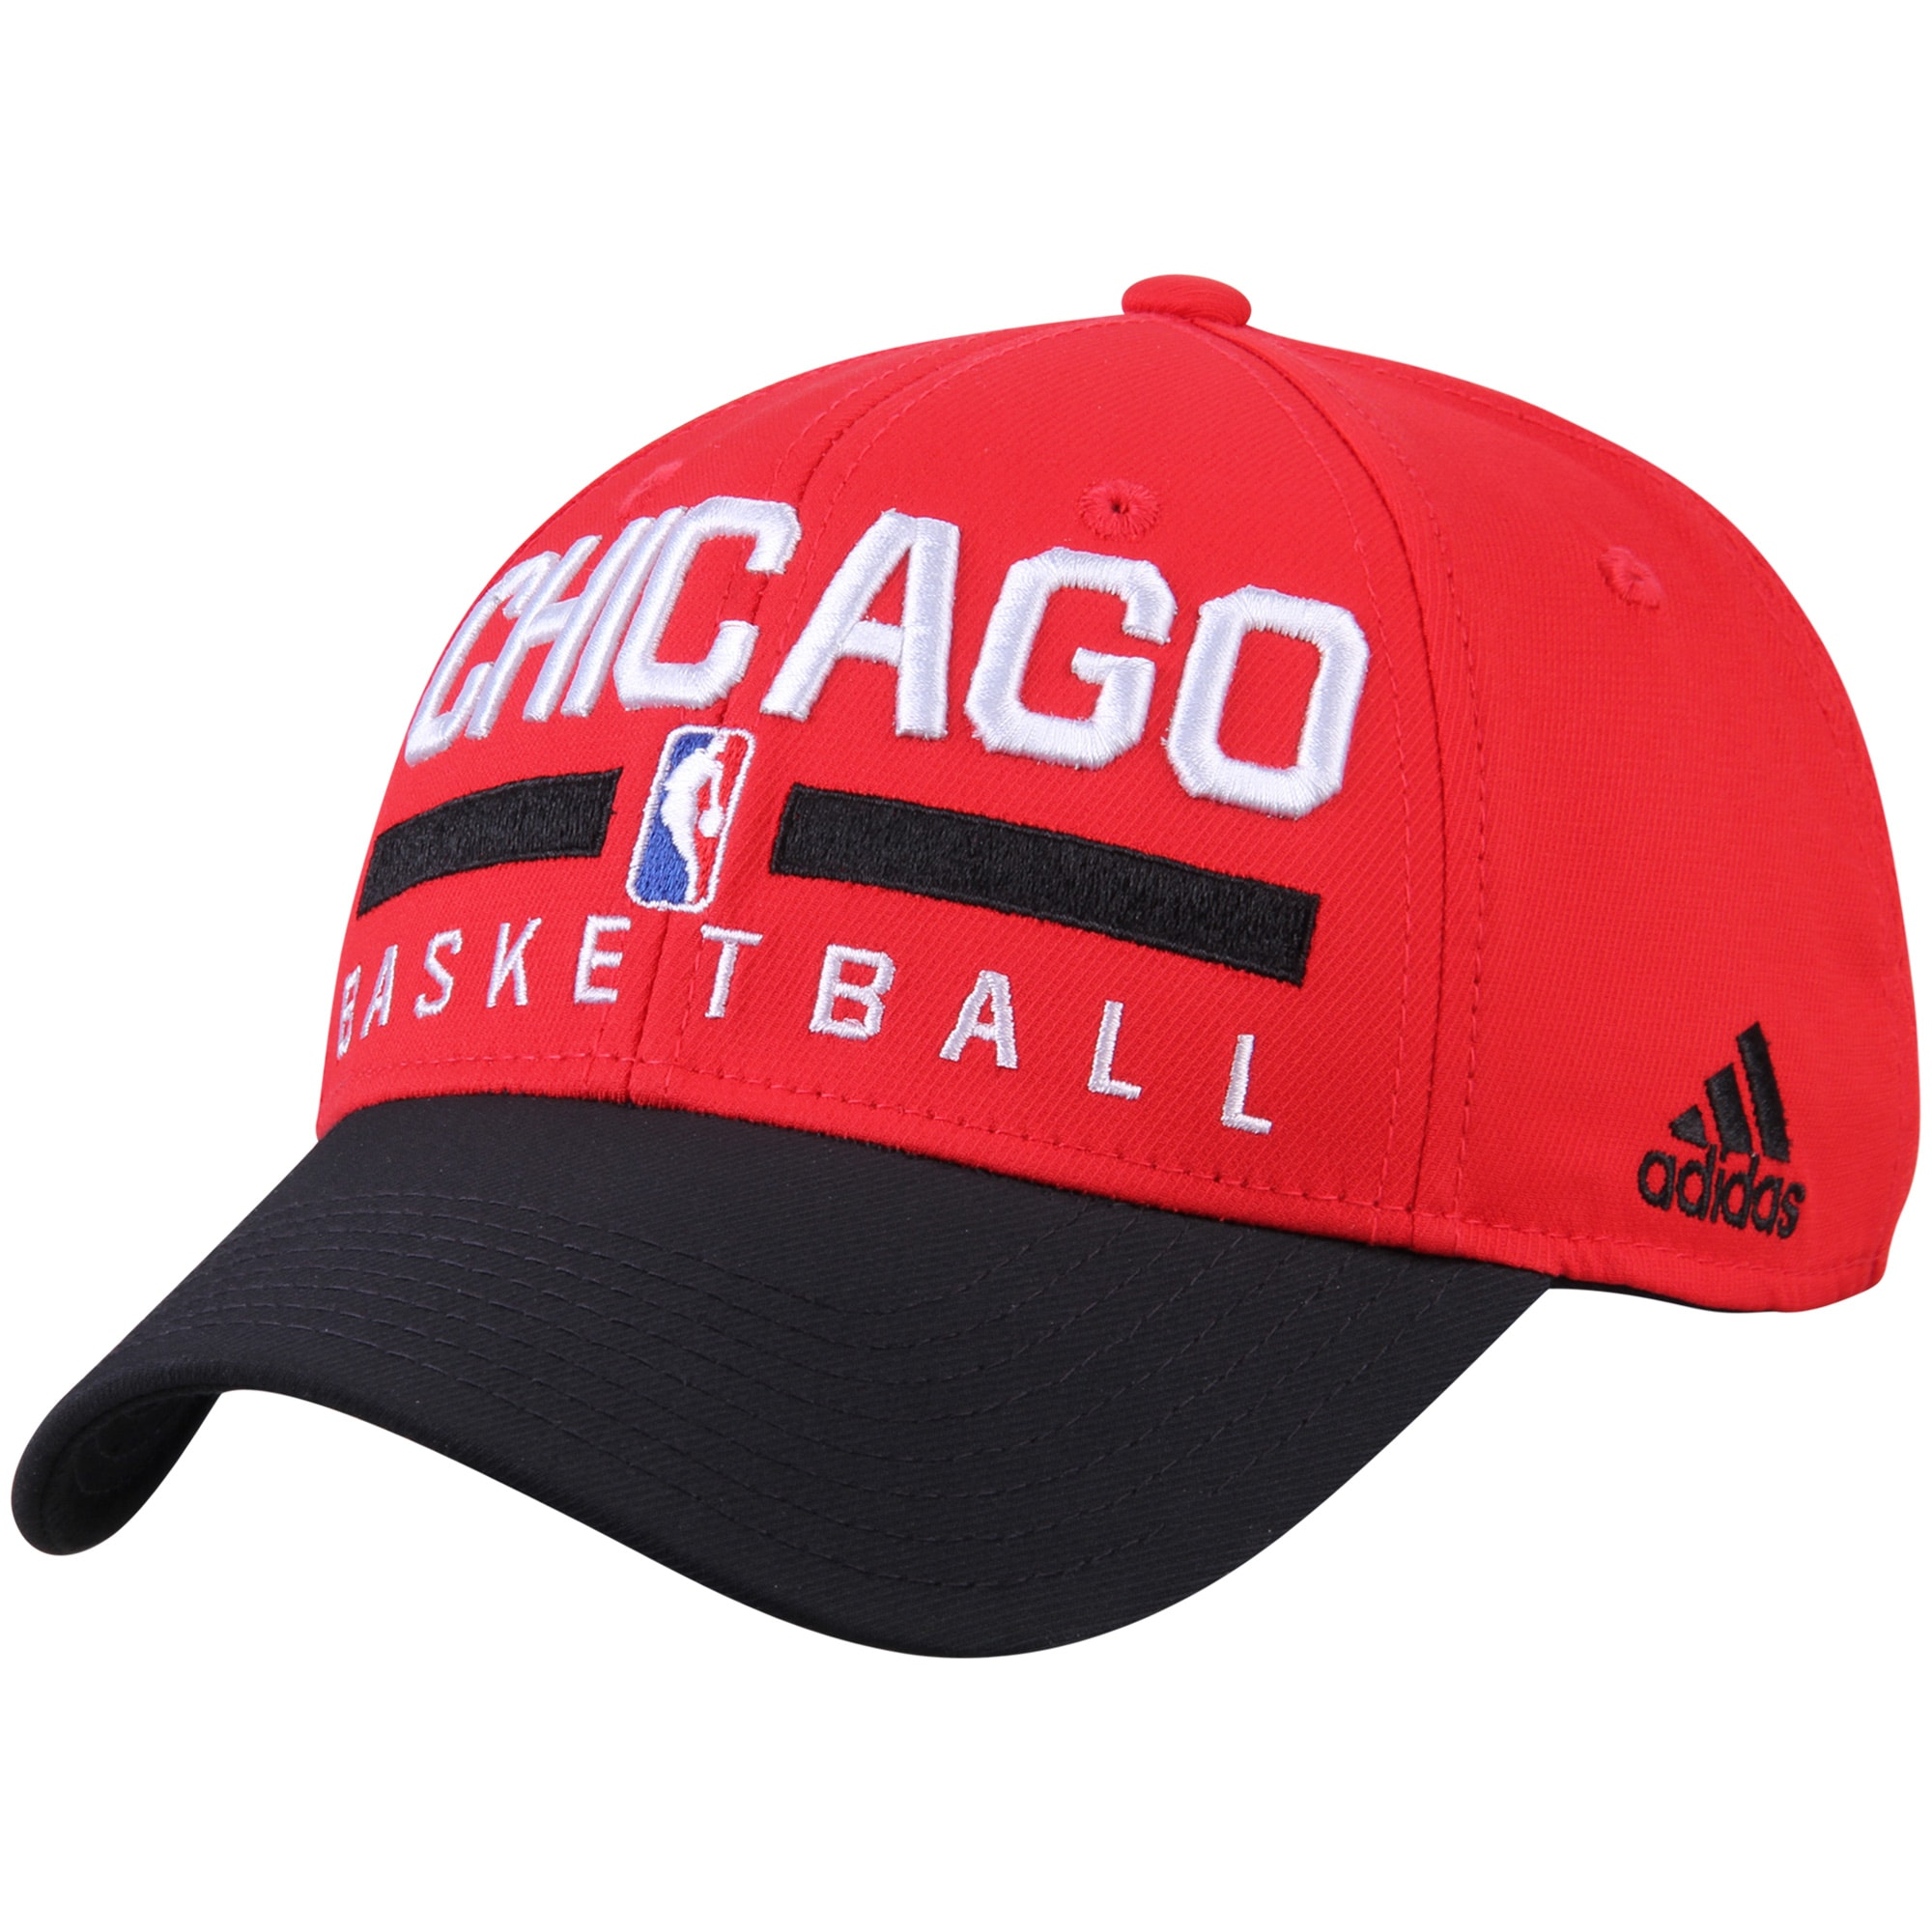 Chicago Bulls adidas 2-Tone Practice Structured Snapback Hat - Red/Black